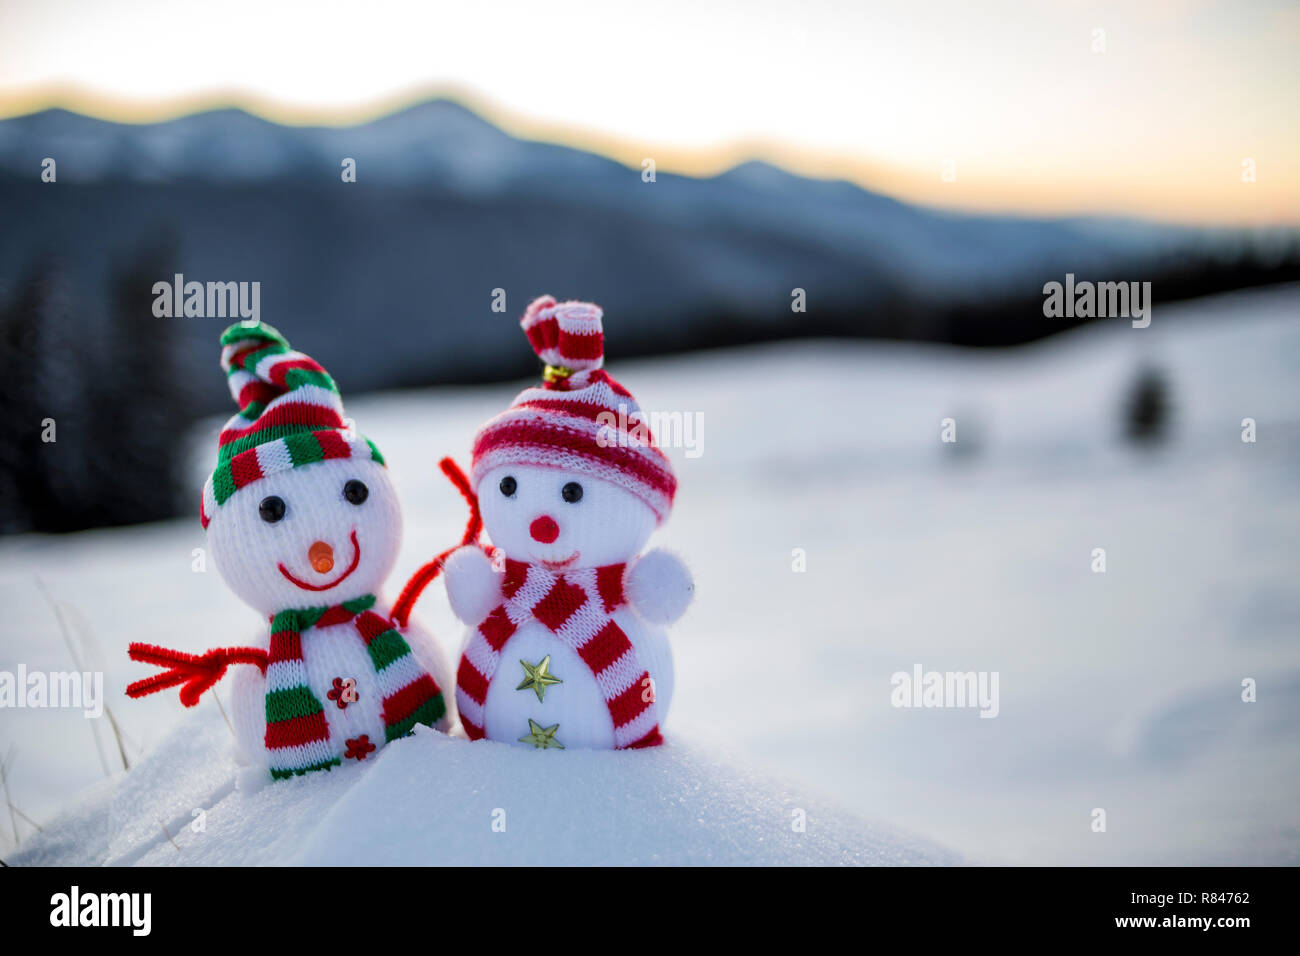 d5fb8e7662aaf Two small funny toys baby snowman in knitted hats and scarves in deep snow  outdoors on